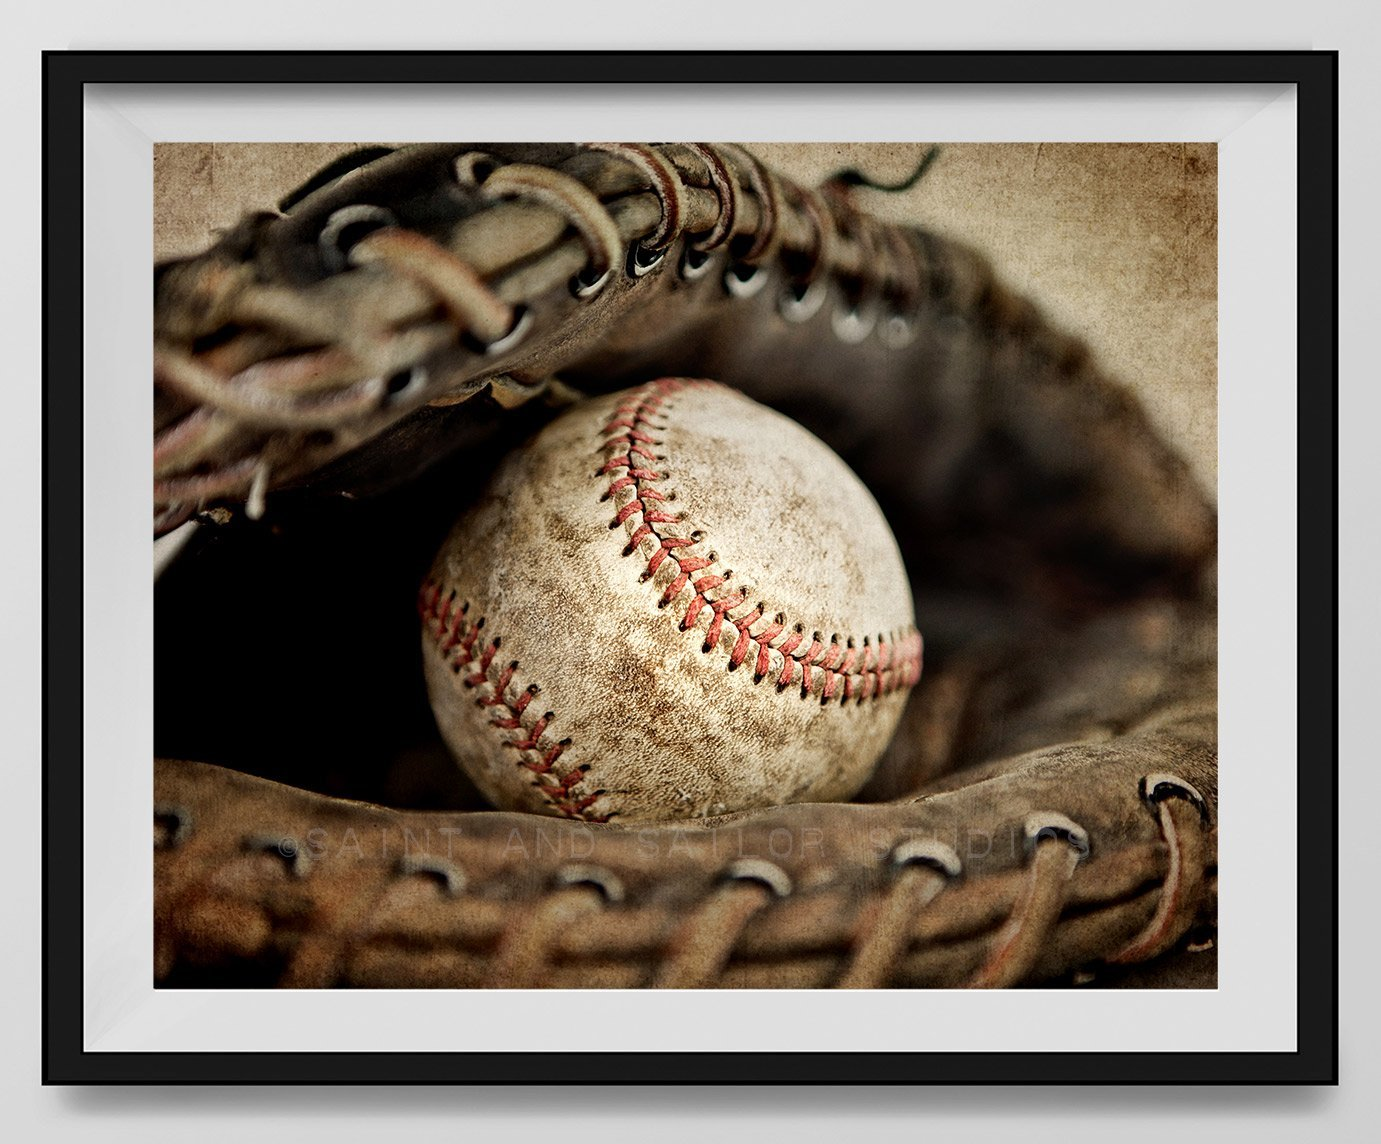 Vintage Baseball in Catchers mit on Vintage Background, Baseball Wall art, Sports Decor, Vintage Baseball Art, Baseball Photography Available as print or canvas. by Saint and Sailor Studios